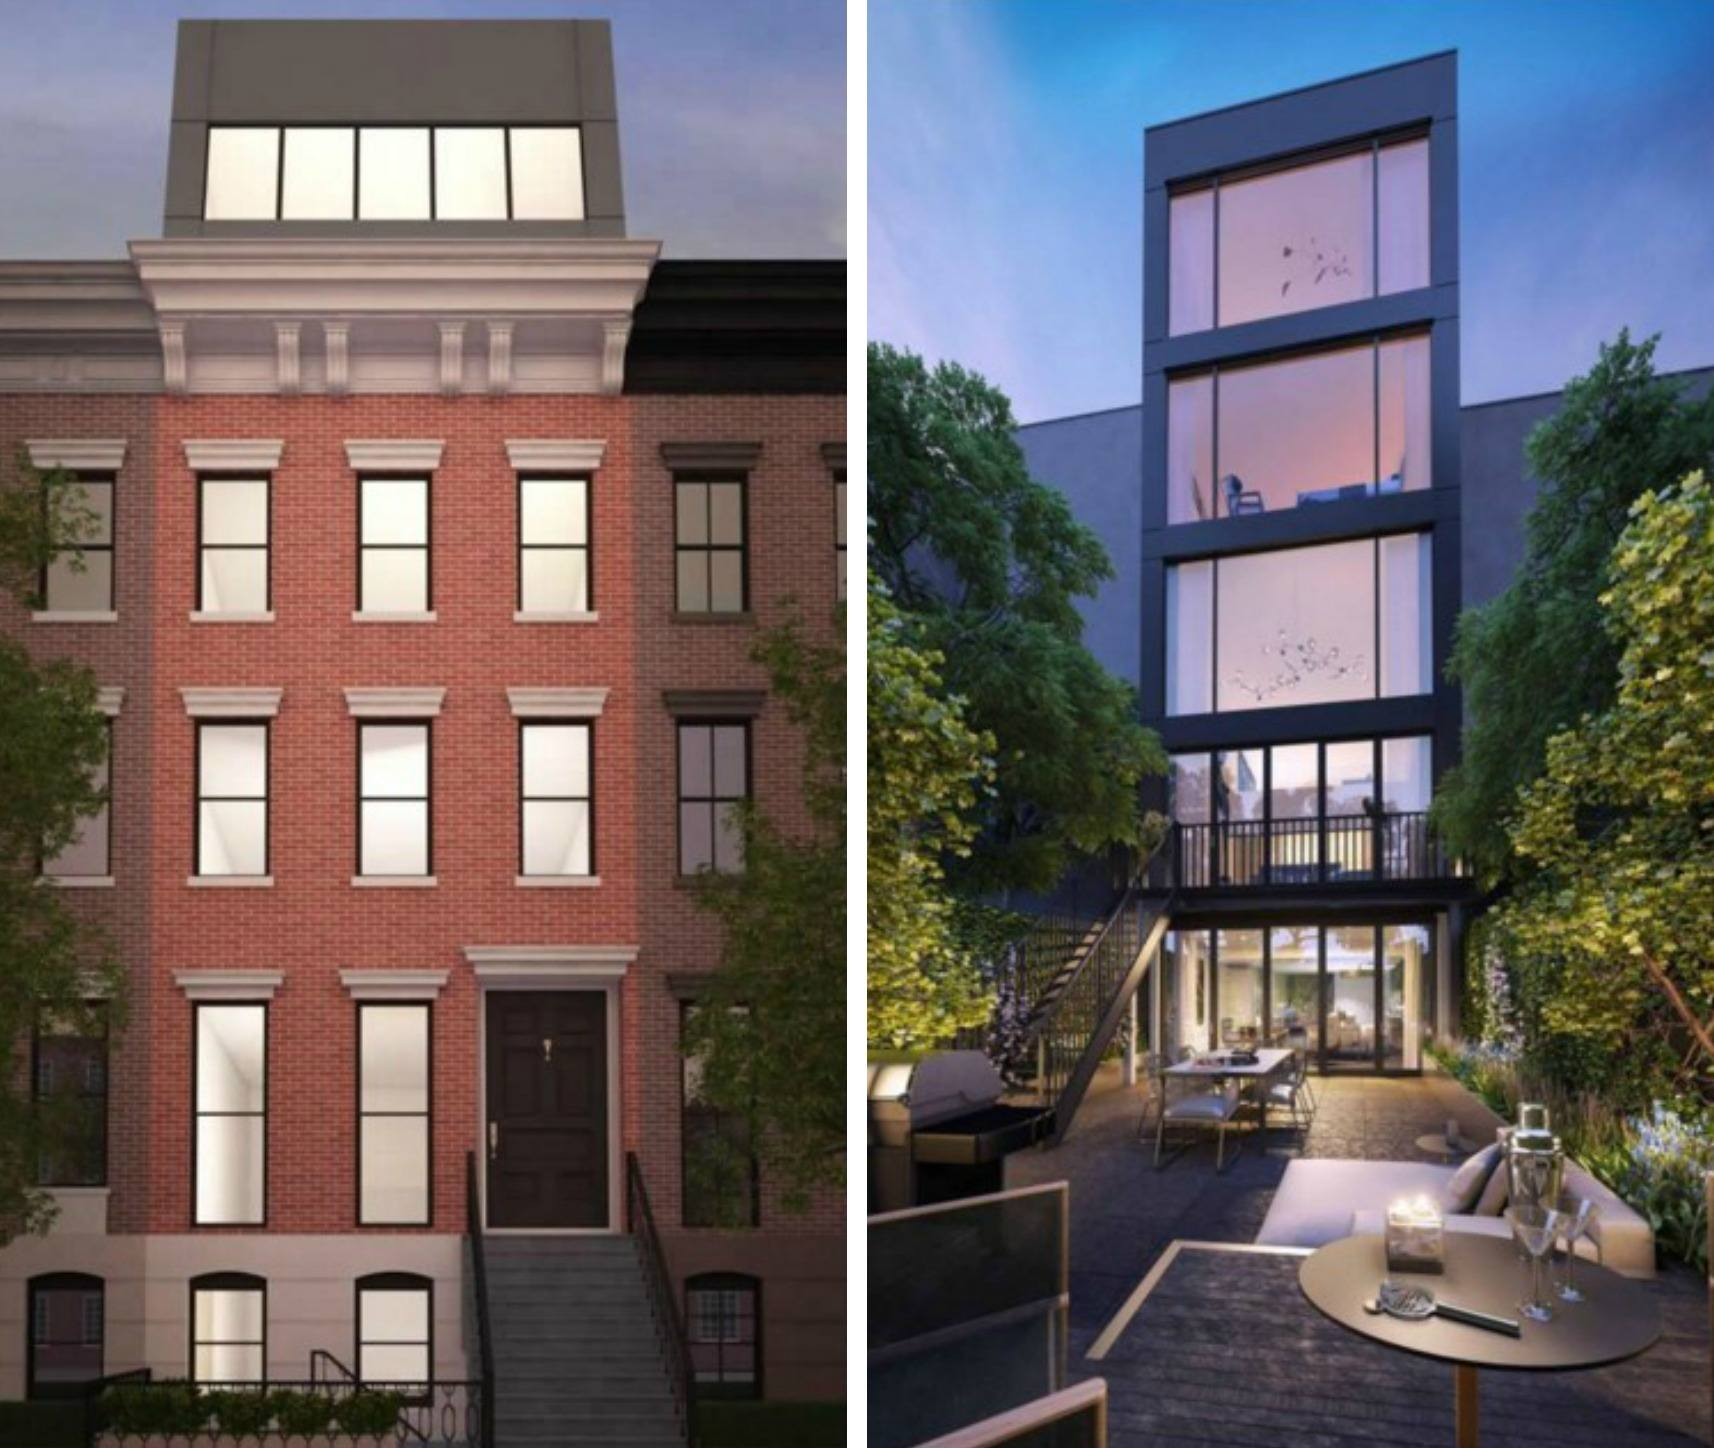 224 west 22nd street, billy bush, chelsea townhouse, ODA Architects